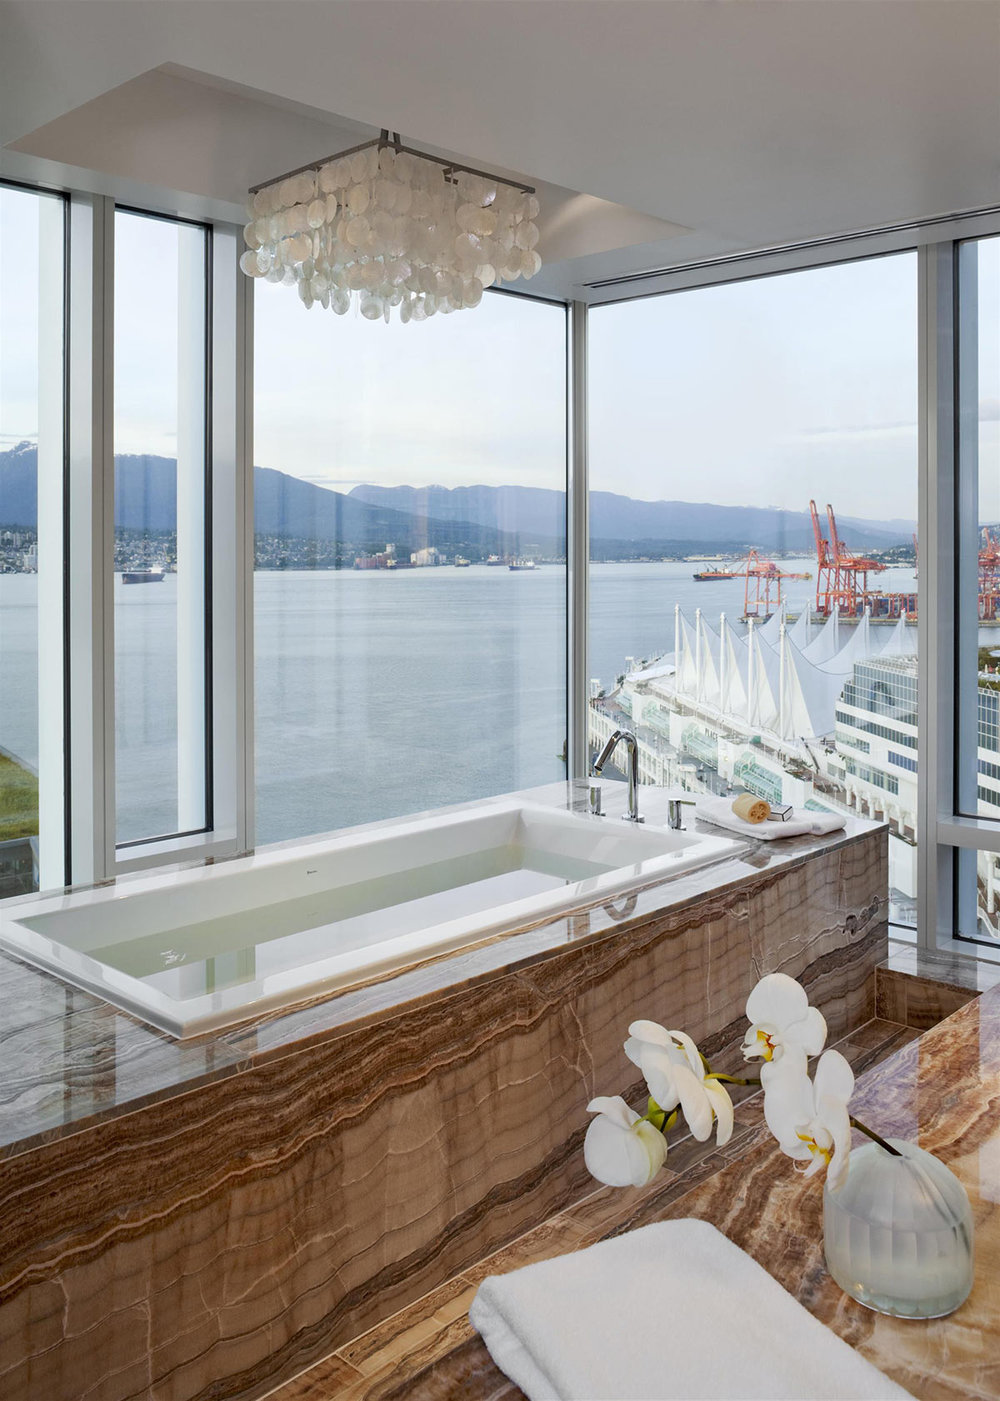 Prime-Minister-Suite-Bathroom_482521_high.jpg